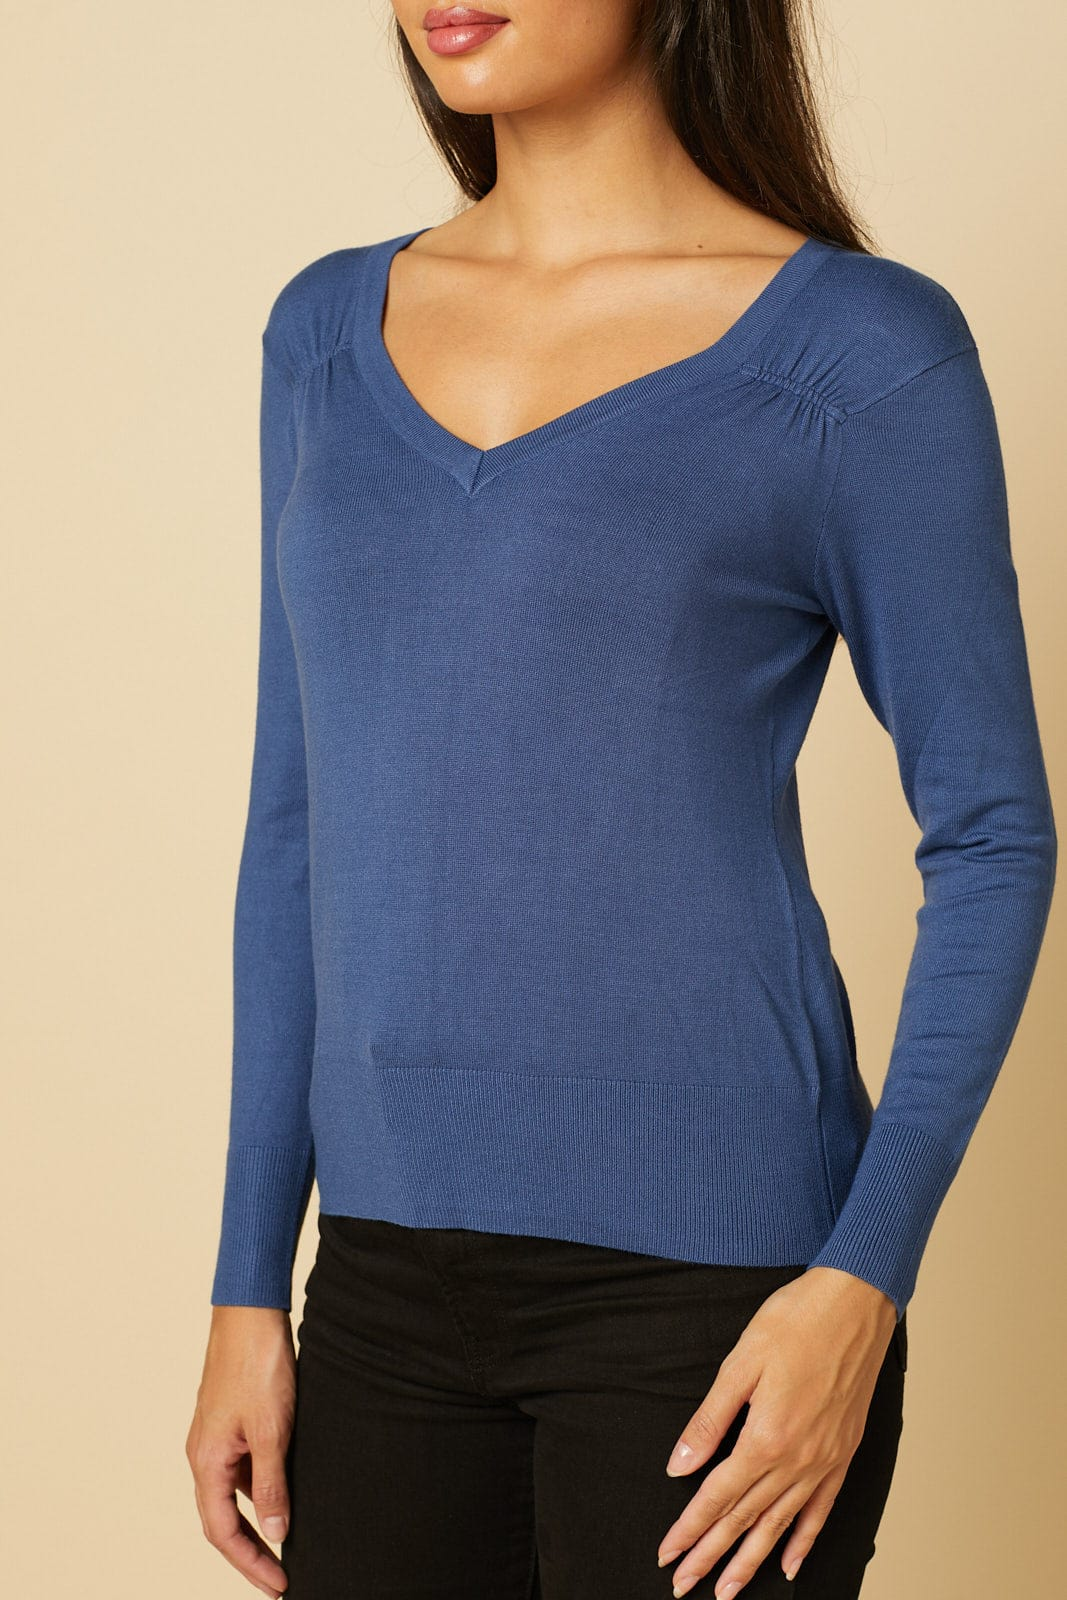 Moroccan Blue Long Sleeve Sweater